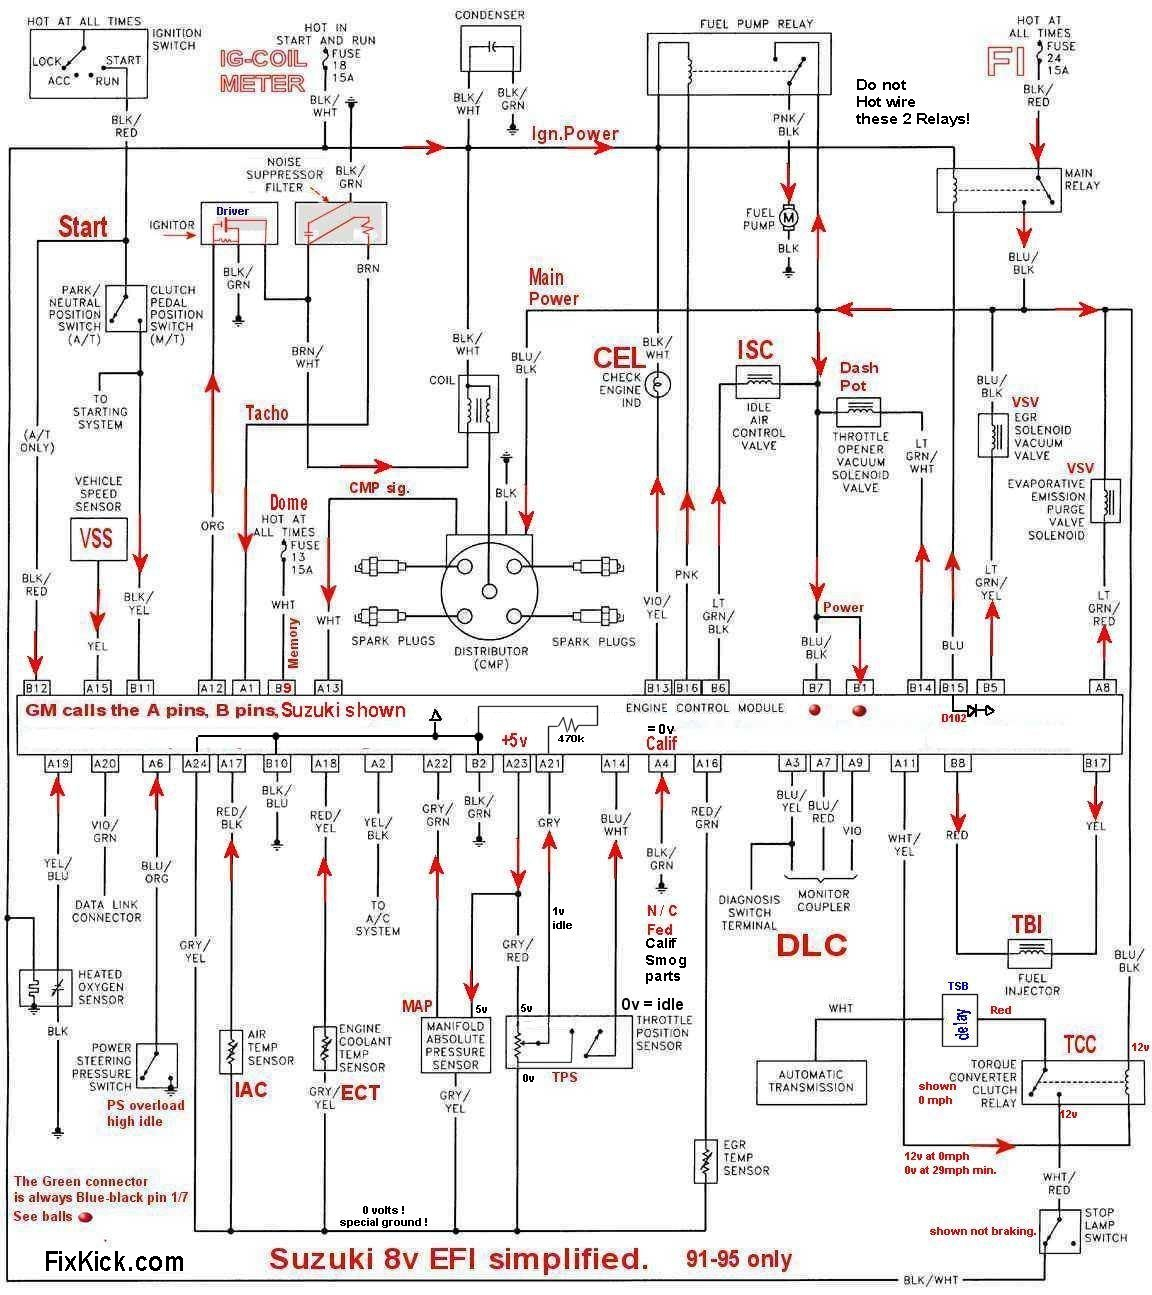 8v tbi schematic91to95 geo tracker wiring diagram 92 geo tracker wiring diagram \u2022 free 2008 Toyota Tundra Running Lights Wiring-Diagram at edmiracle.co